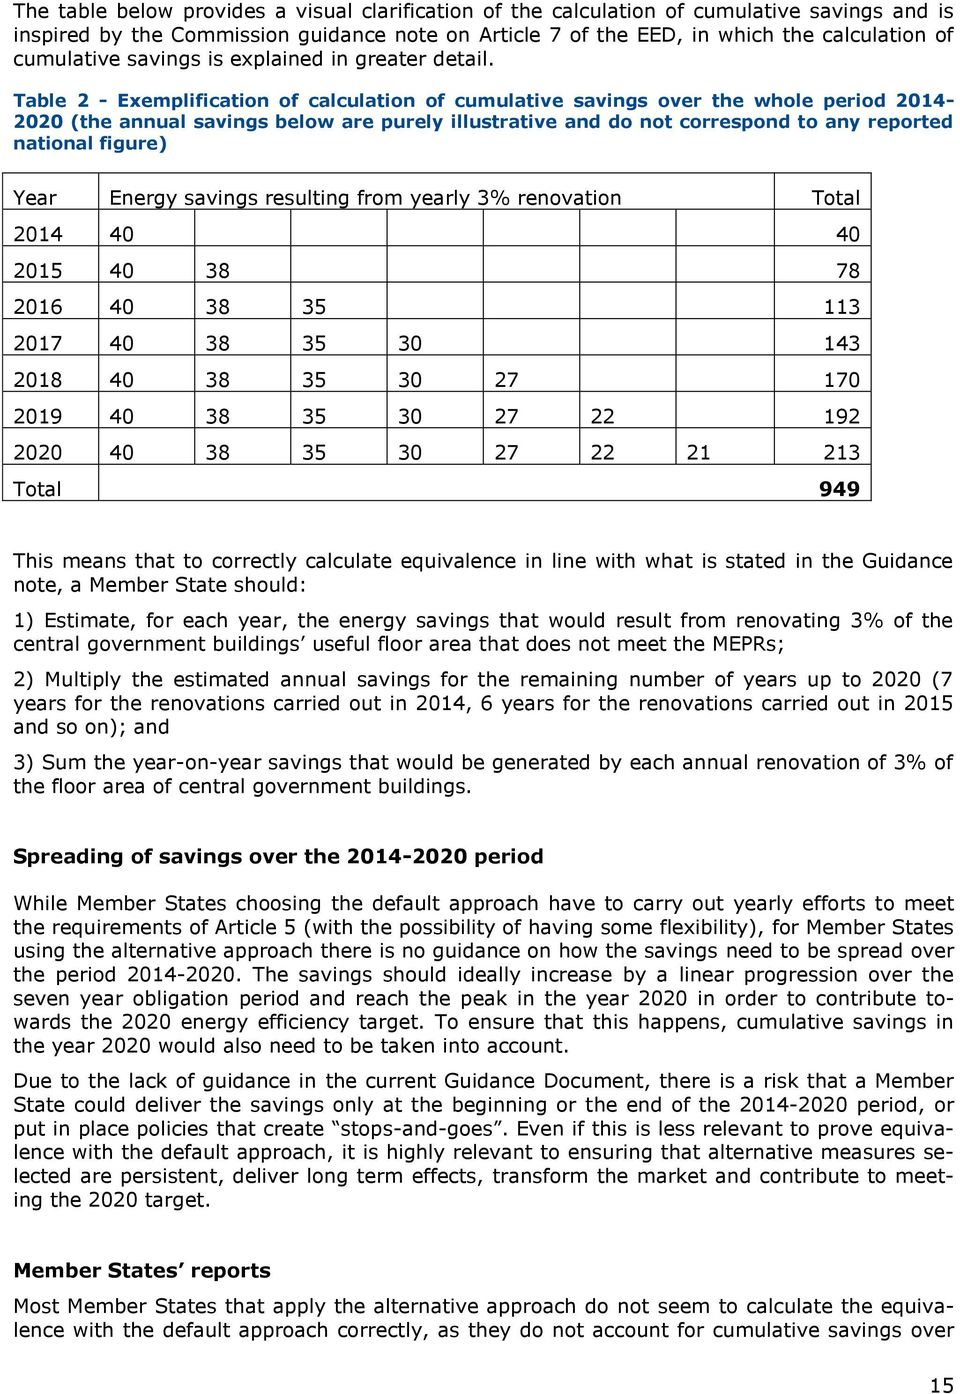 Table 2 - Exemplification of calculation of cumulative savings over the whole period 2014-2020 (the annual savings below are purely illustrative and do not correspond to any reported national figure)